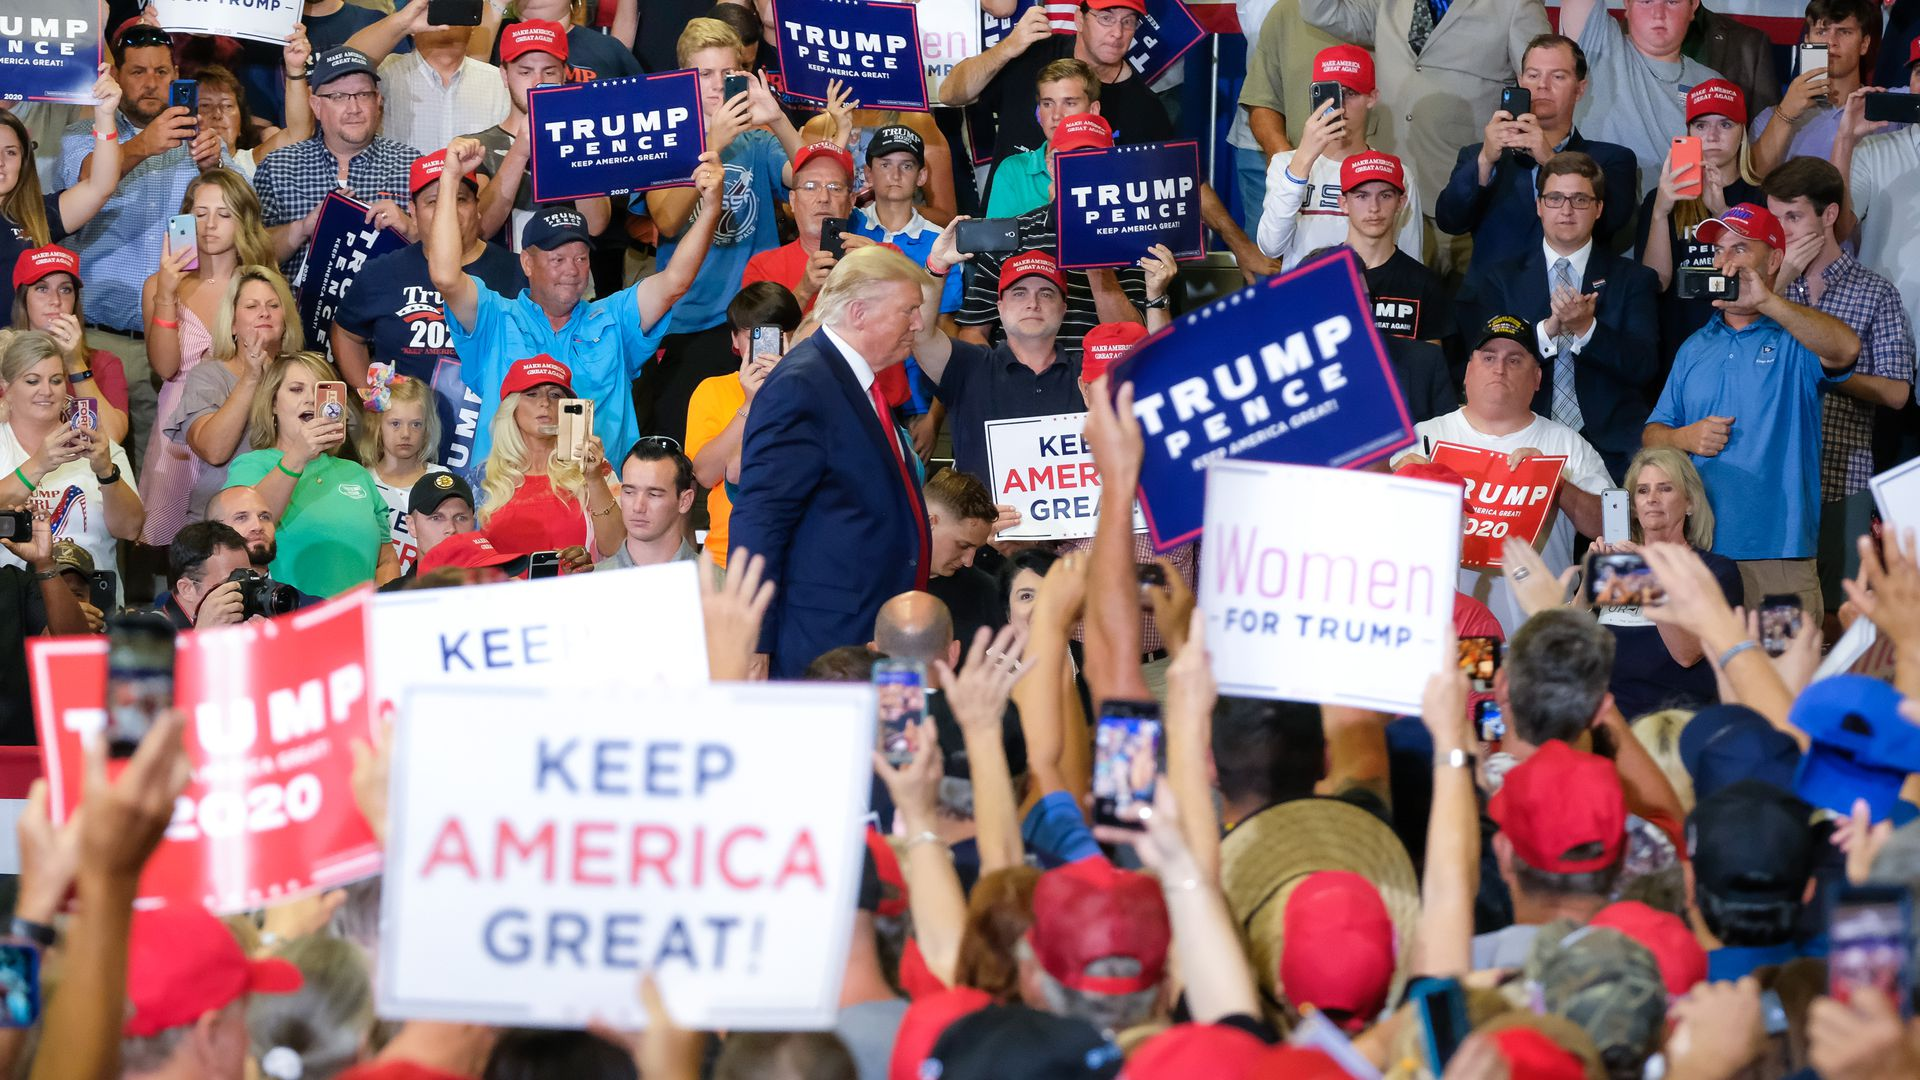 Trump walks through a crowd holding Trump Pence signs at a rally.